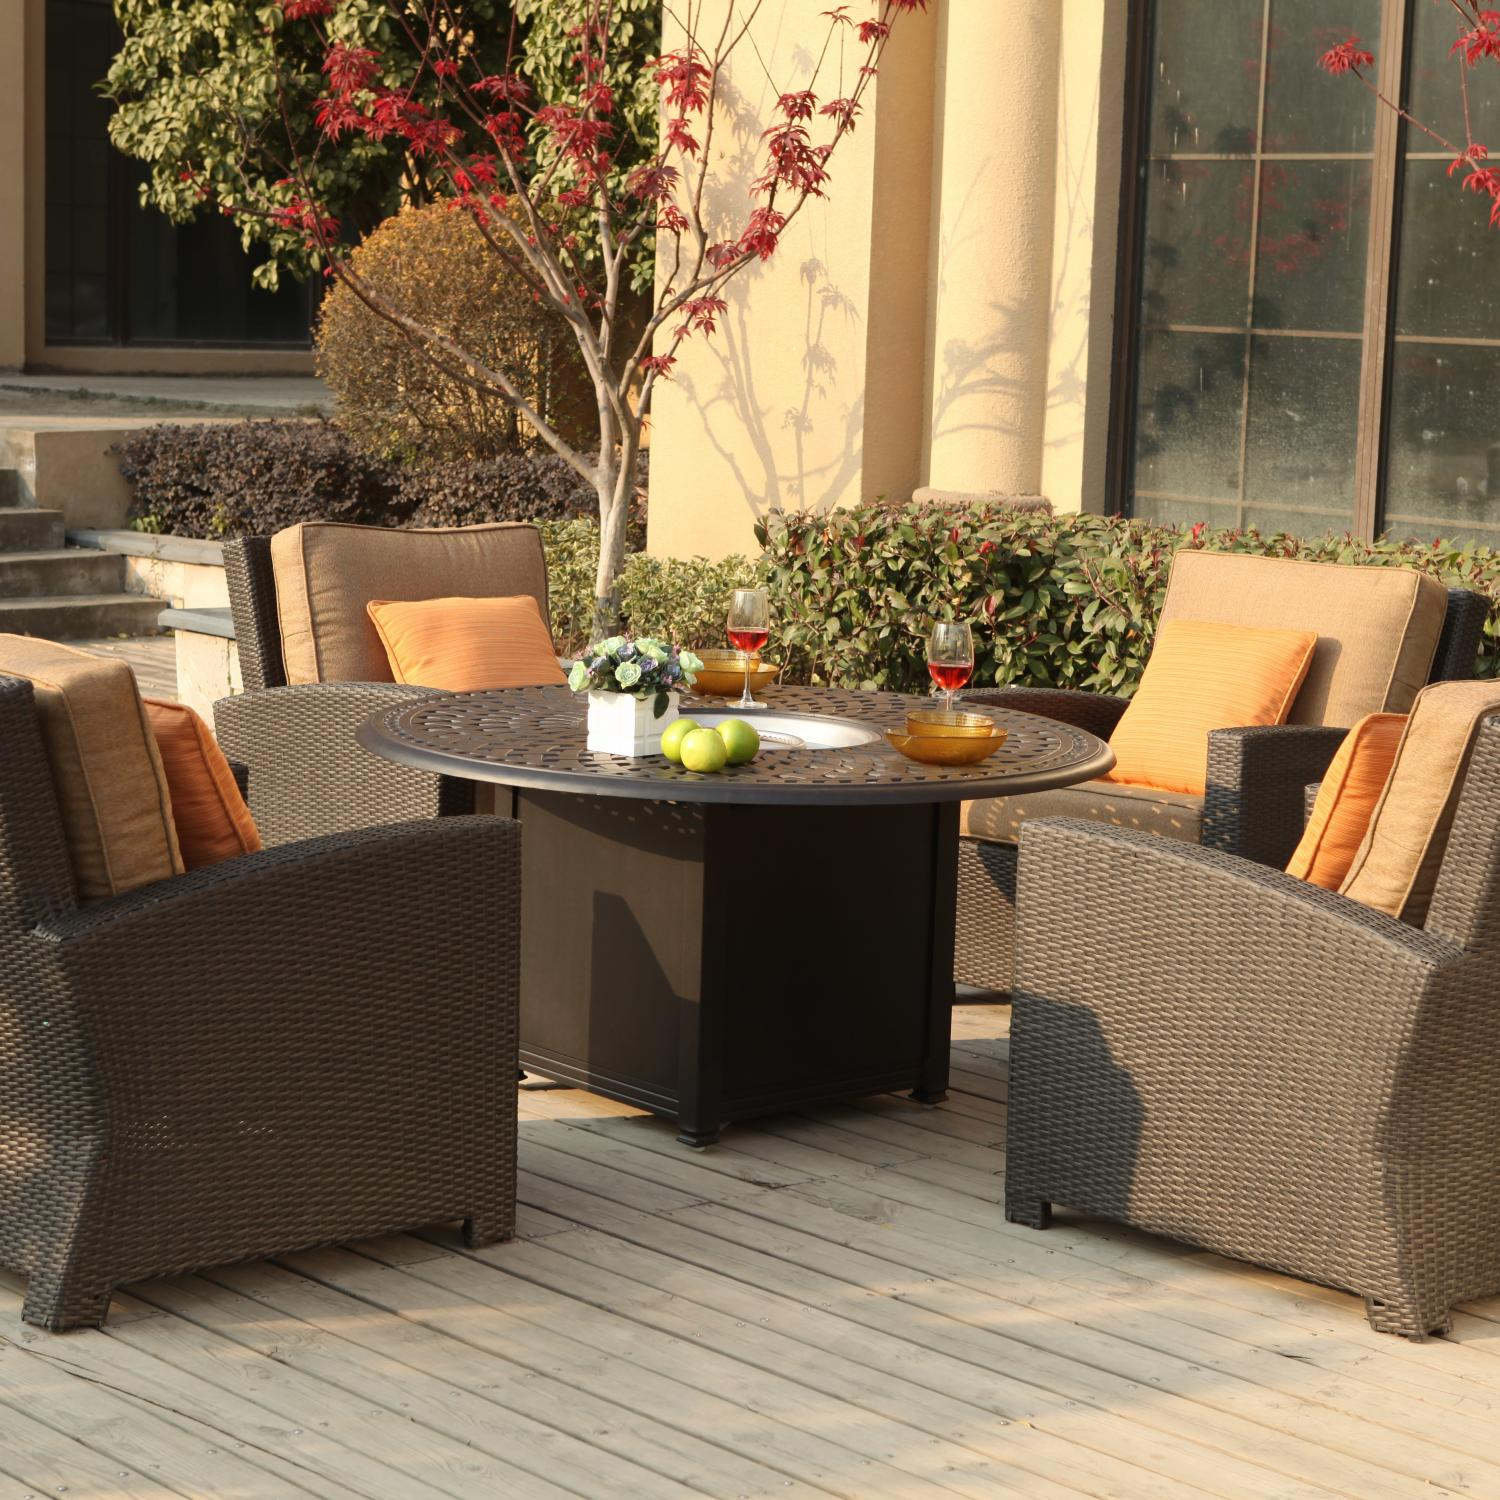 darlee vienna 5 piece resin wicker fire pit patio set - Fire Pit Patio Set